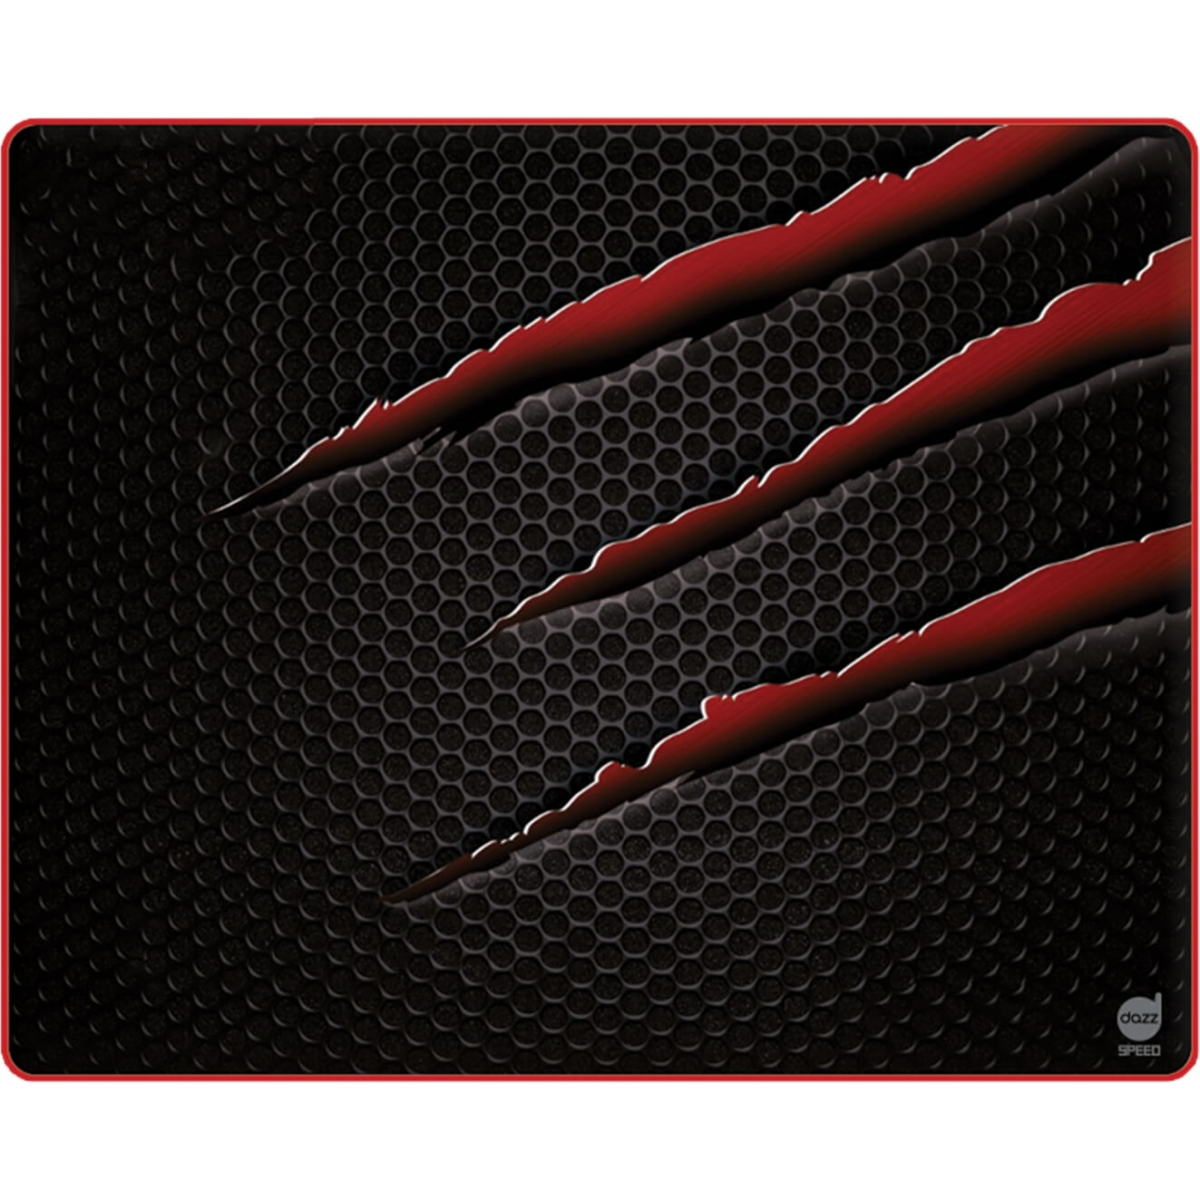 Mousepad Gamer Dazz Nightmare Speed M 624905